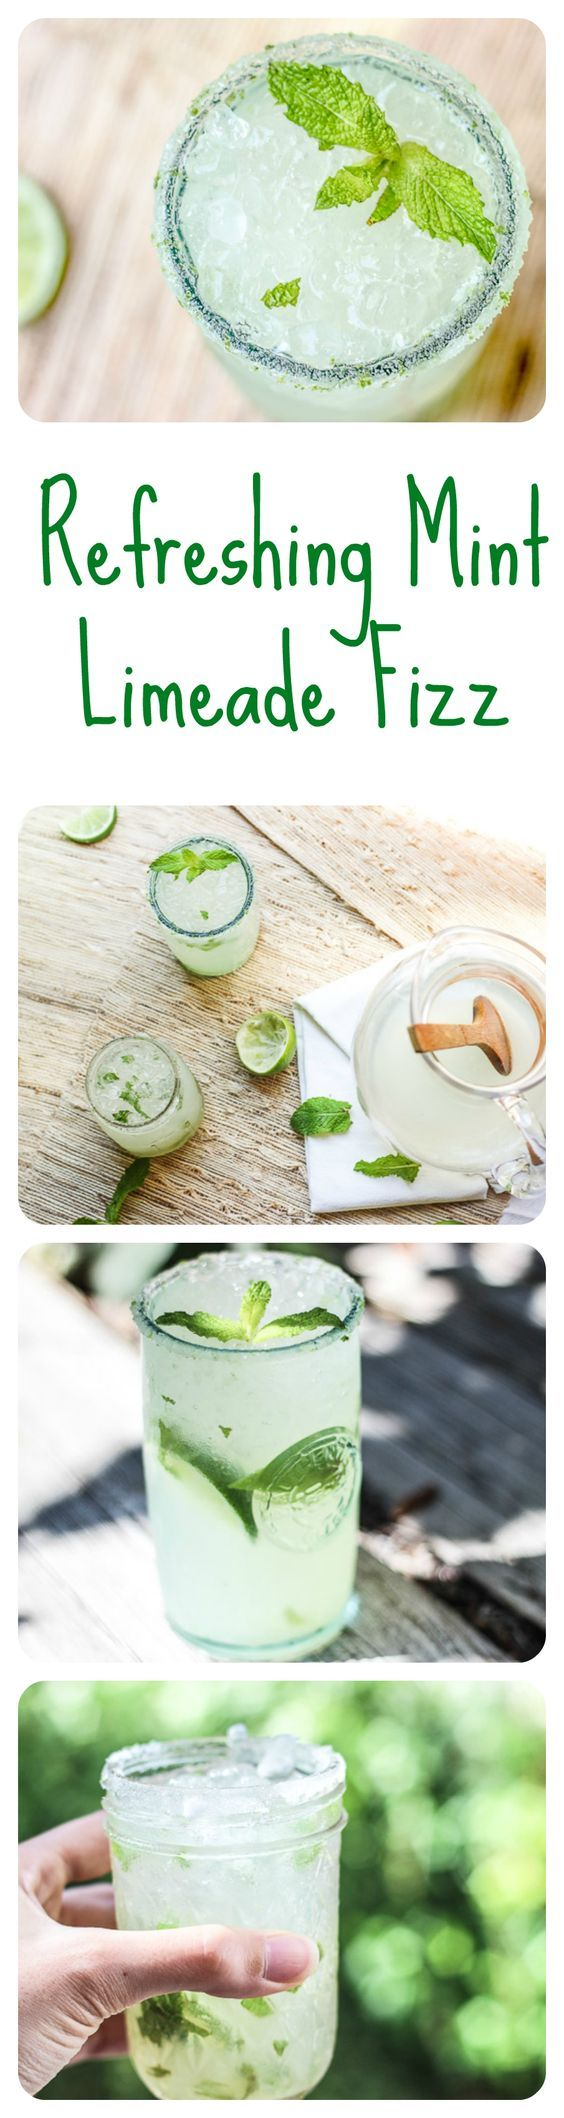 Mint Limeade | 7 Healthy Snacks For a Day at the Beach | http://www.hercampus.com/health/food/7-healthy-snacks-day-beach